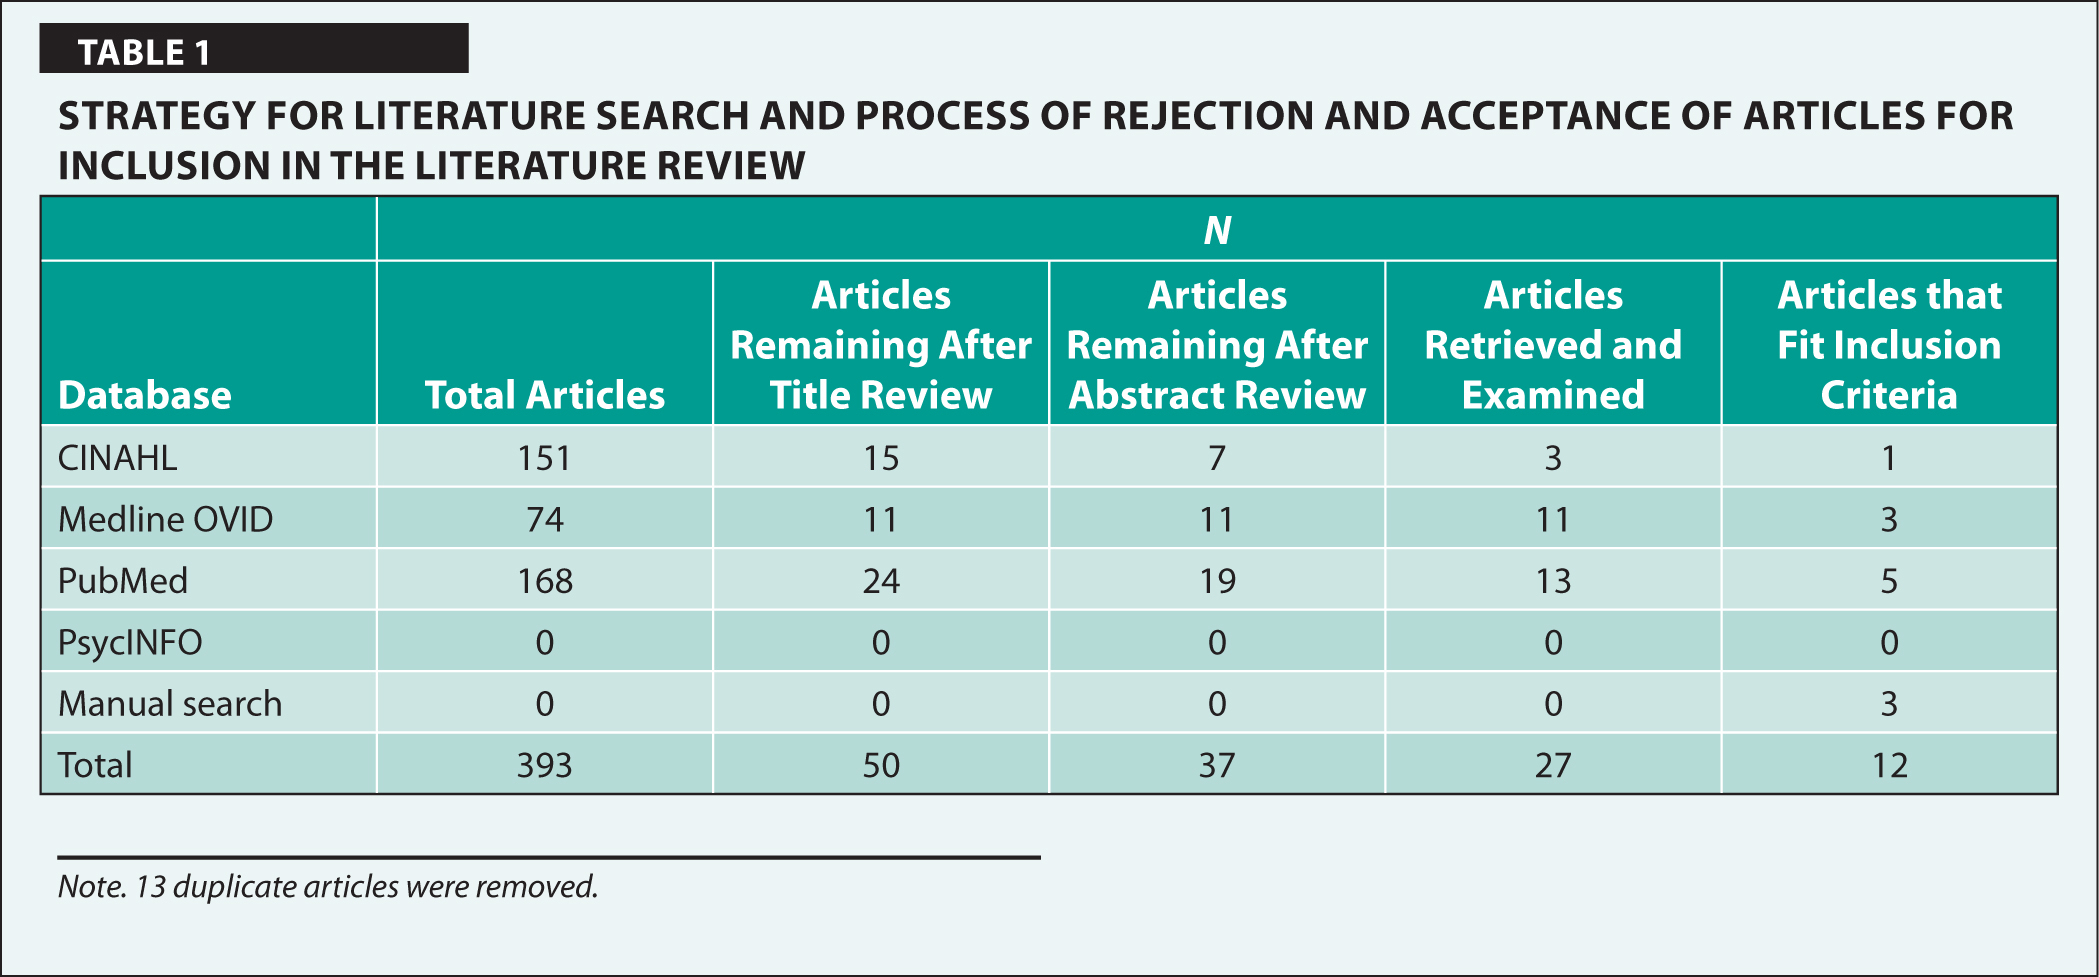 Strategy for Literature Search and Process of Rejection and Acceptance of Articles for Inclusion in the Literature Review